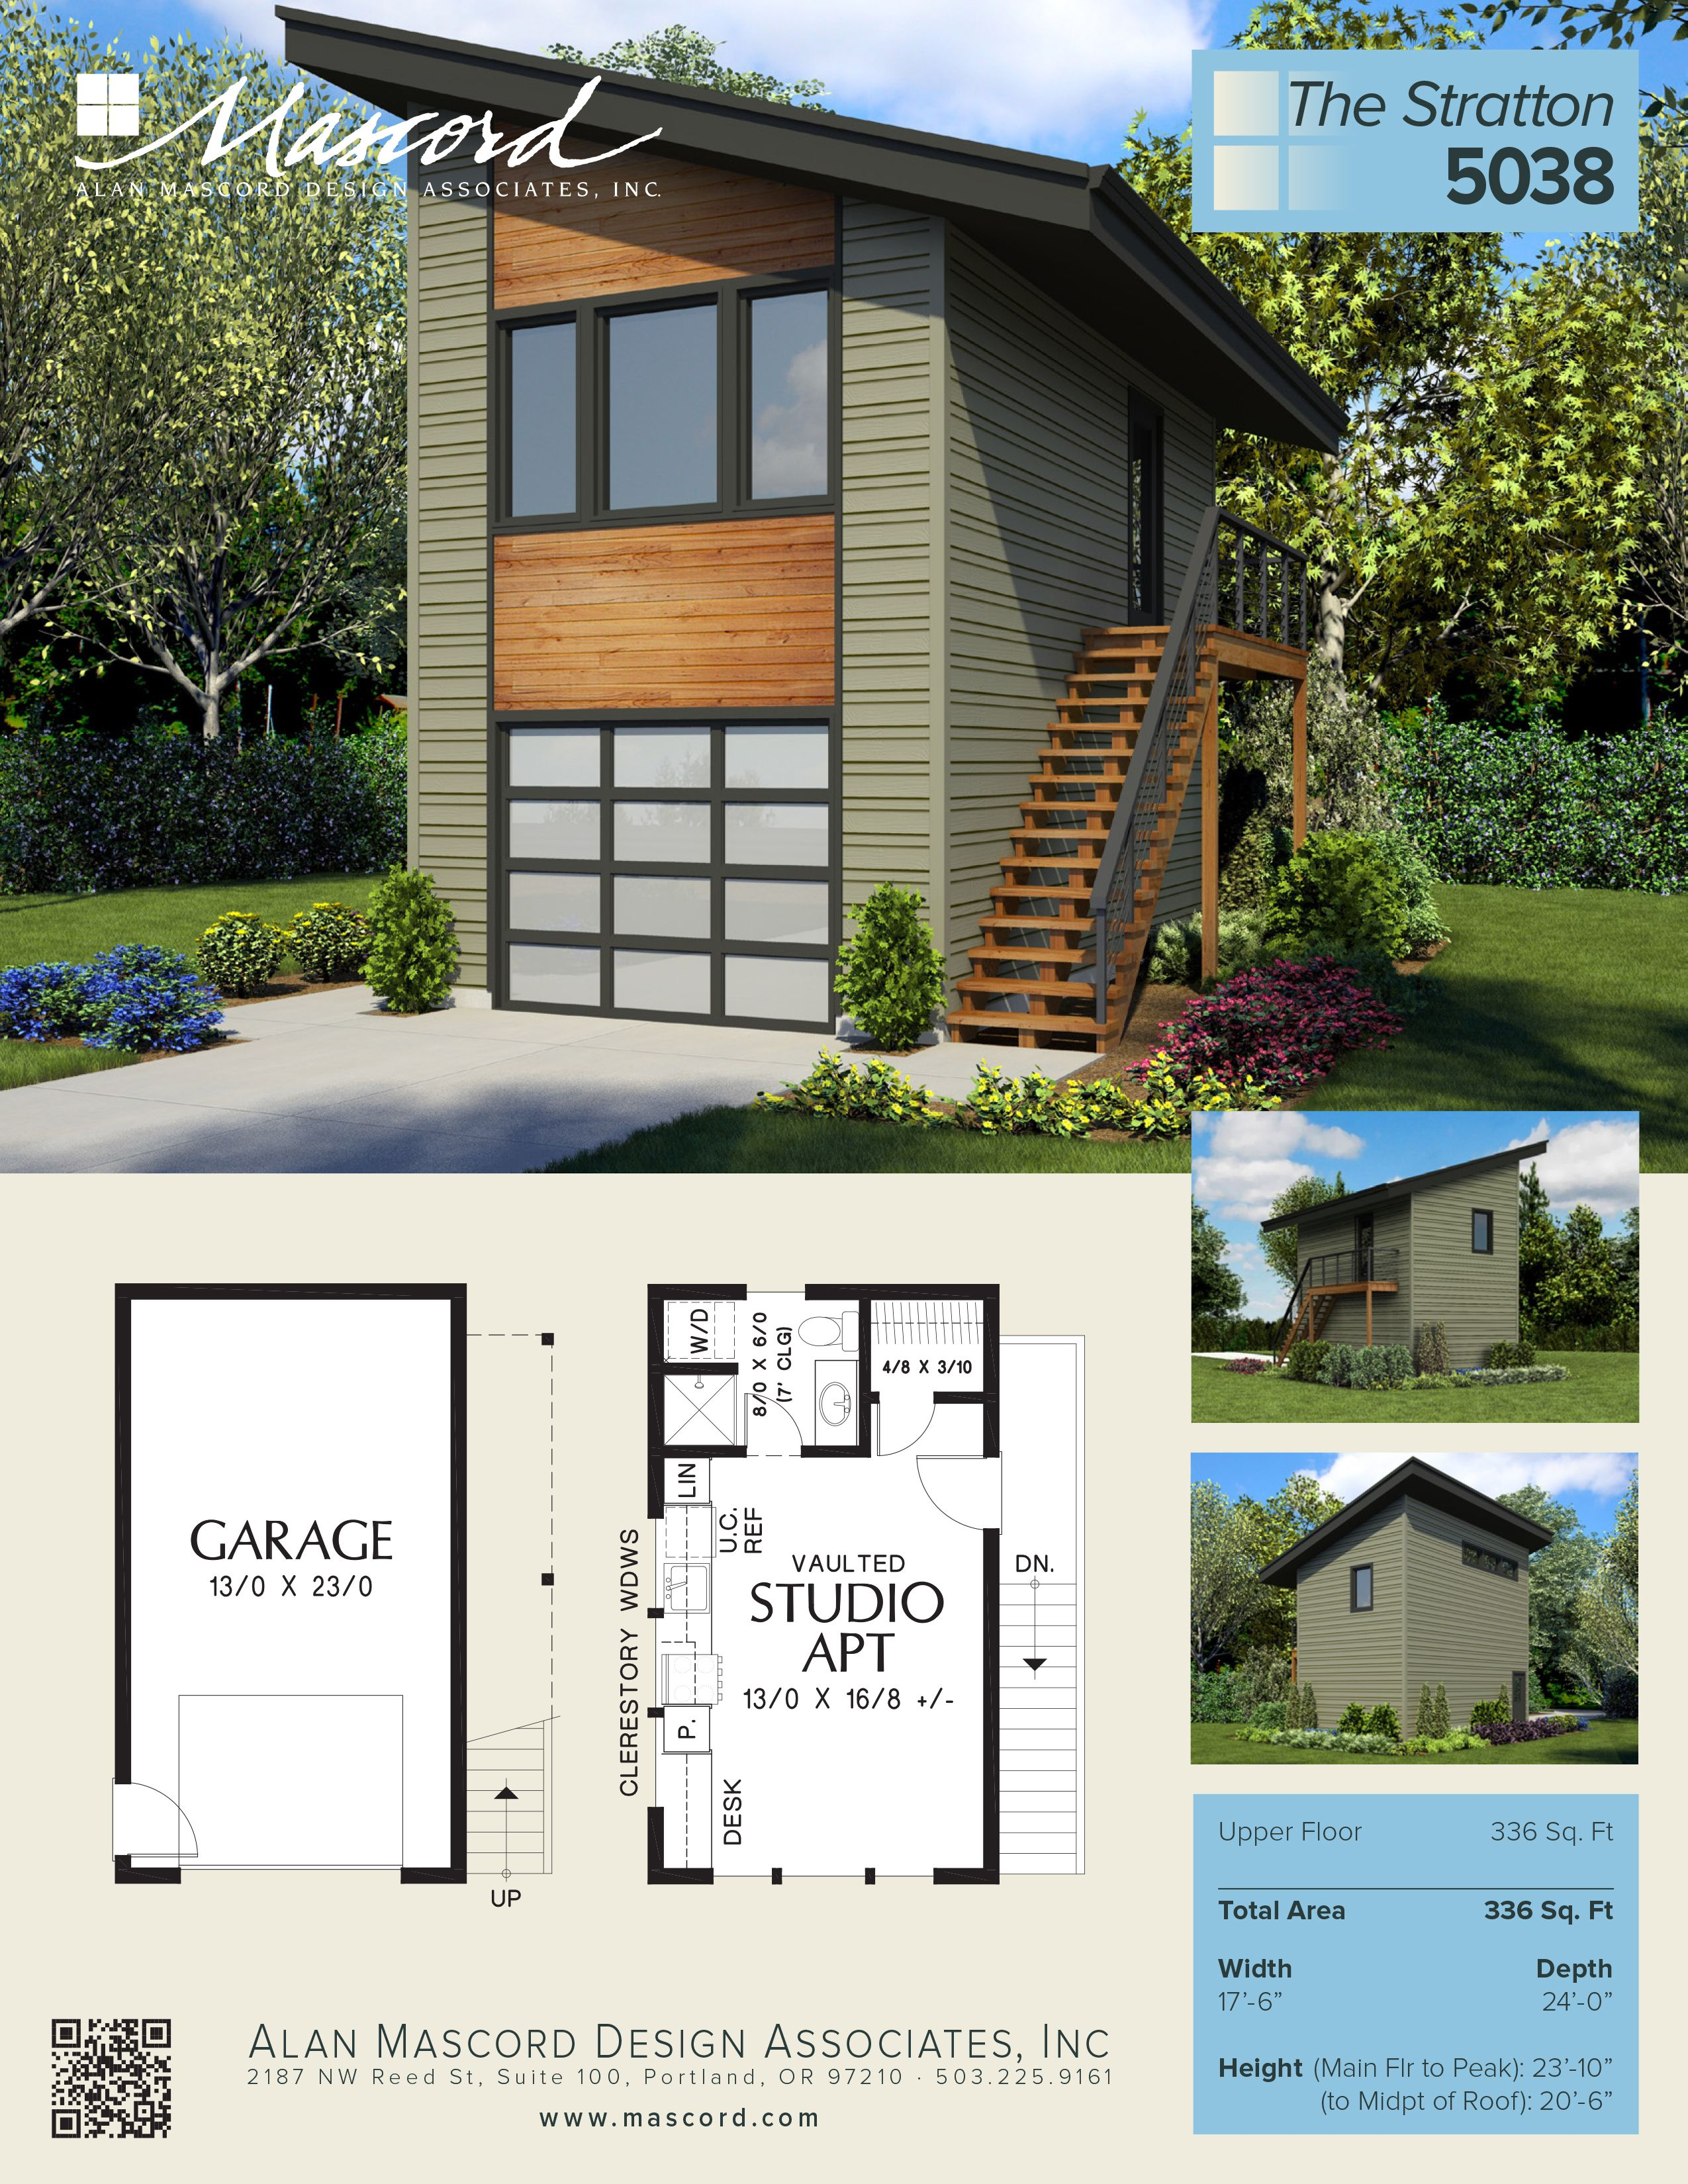 A New Contemporary Garage Plan With Studio Apartment Above The Perfect Complimentary St Carriage House Plans Garage Apartment Plans Contemporary House Plans